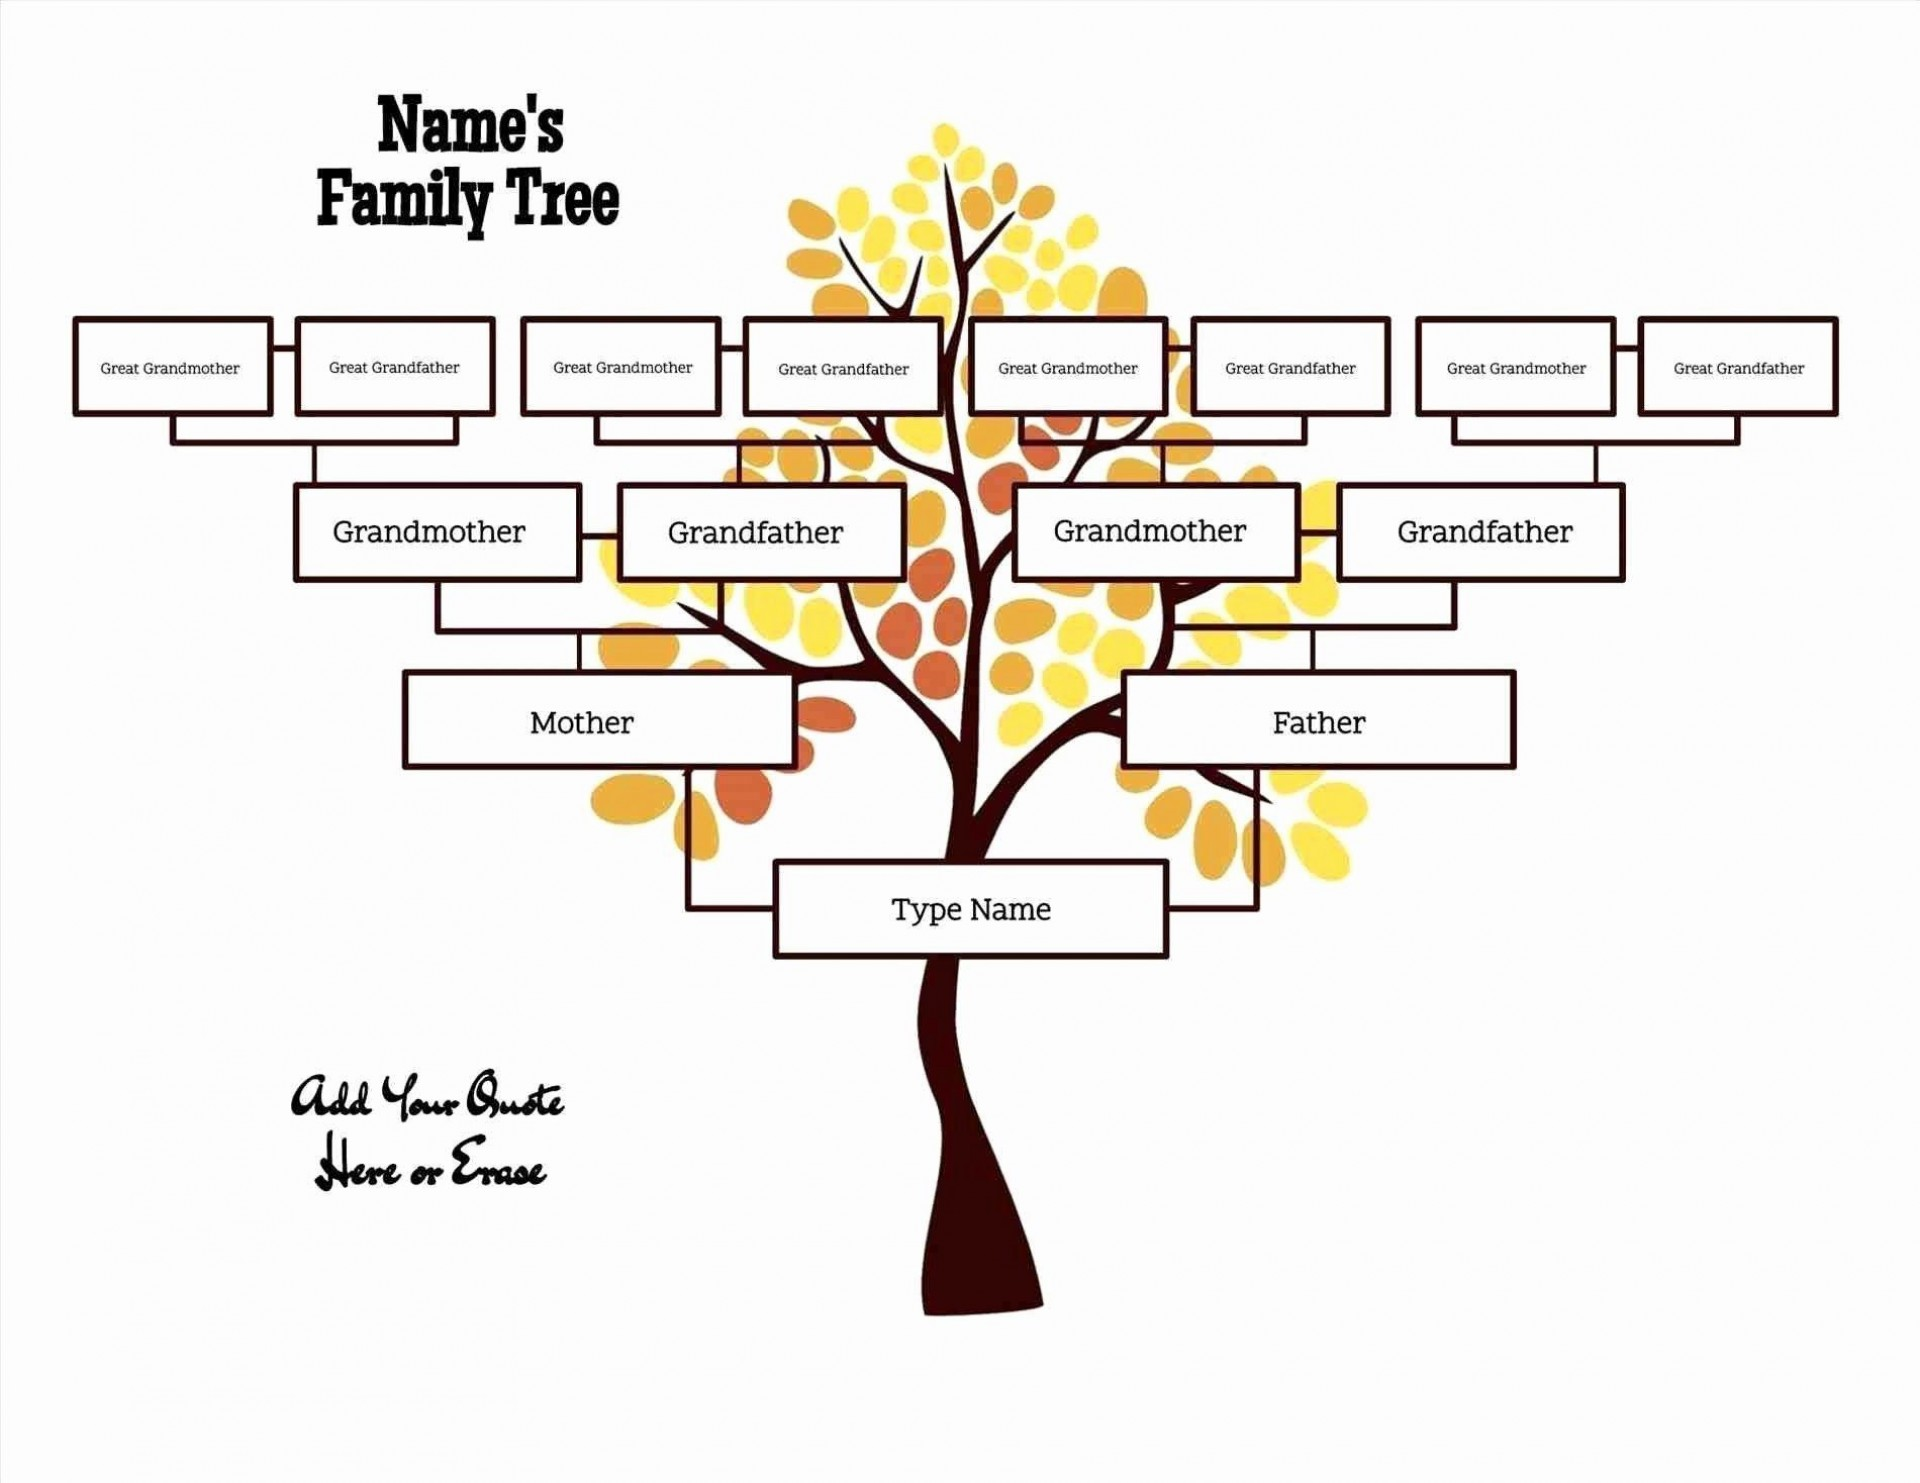 000 Best Free Editable Family Tree Template Concept  With Sibling Powerpoint For Mac1920